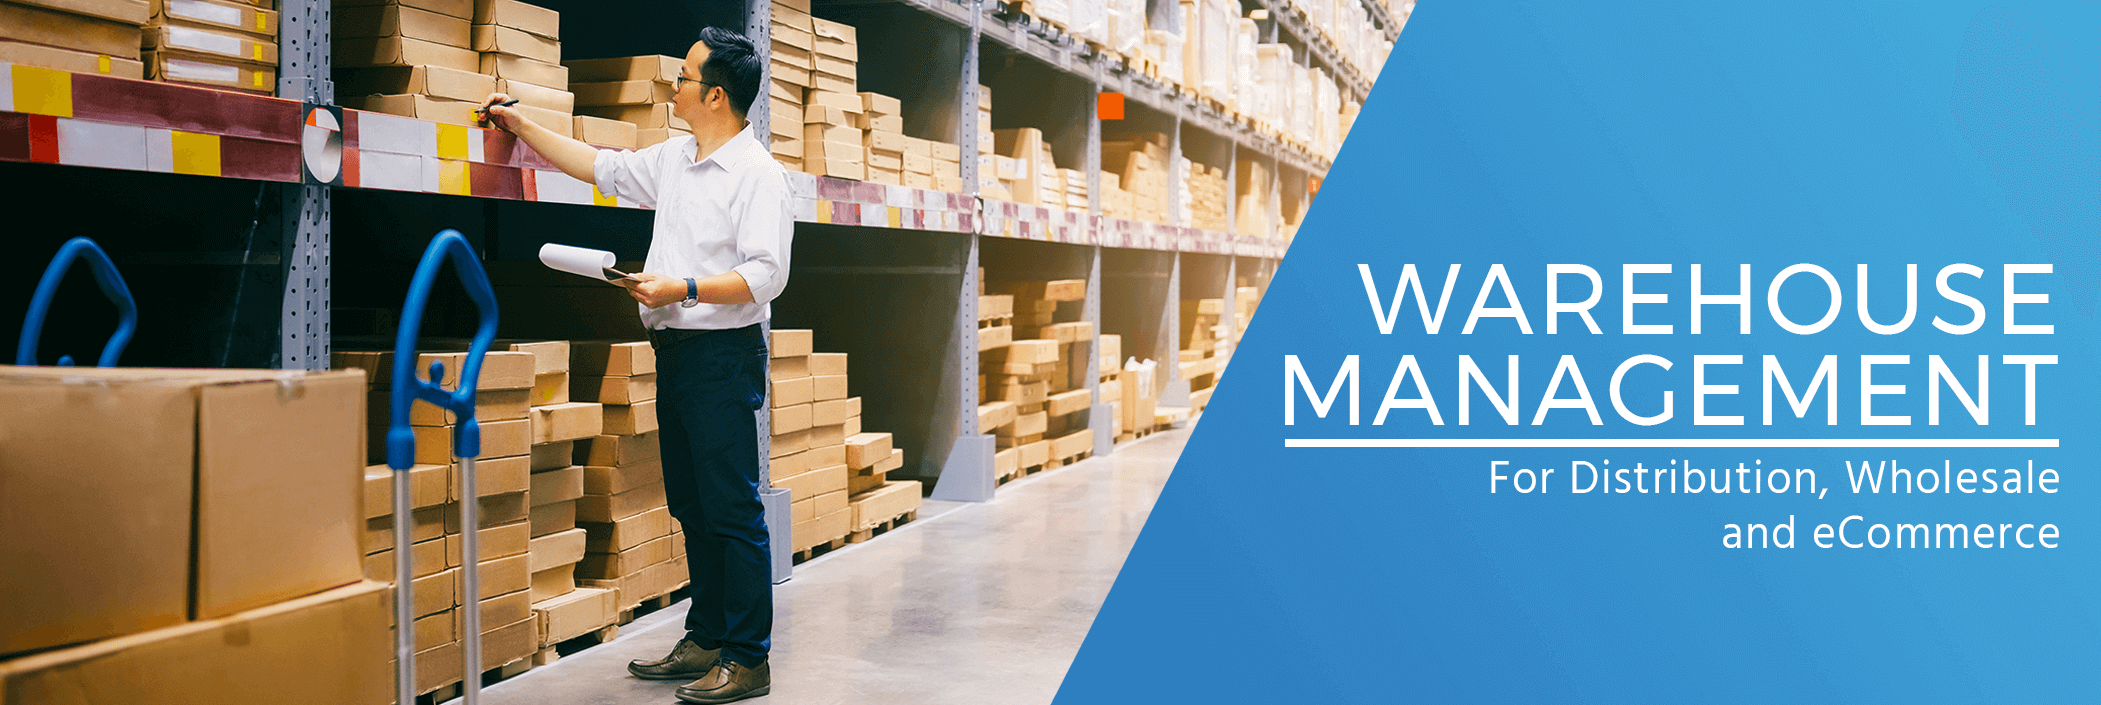 warehouse management for wholesalers distributors and ecommerce